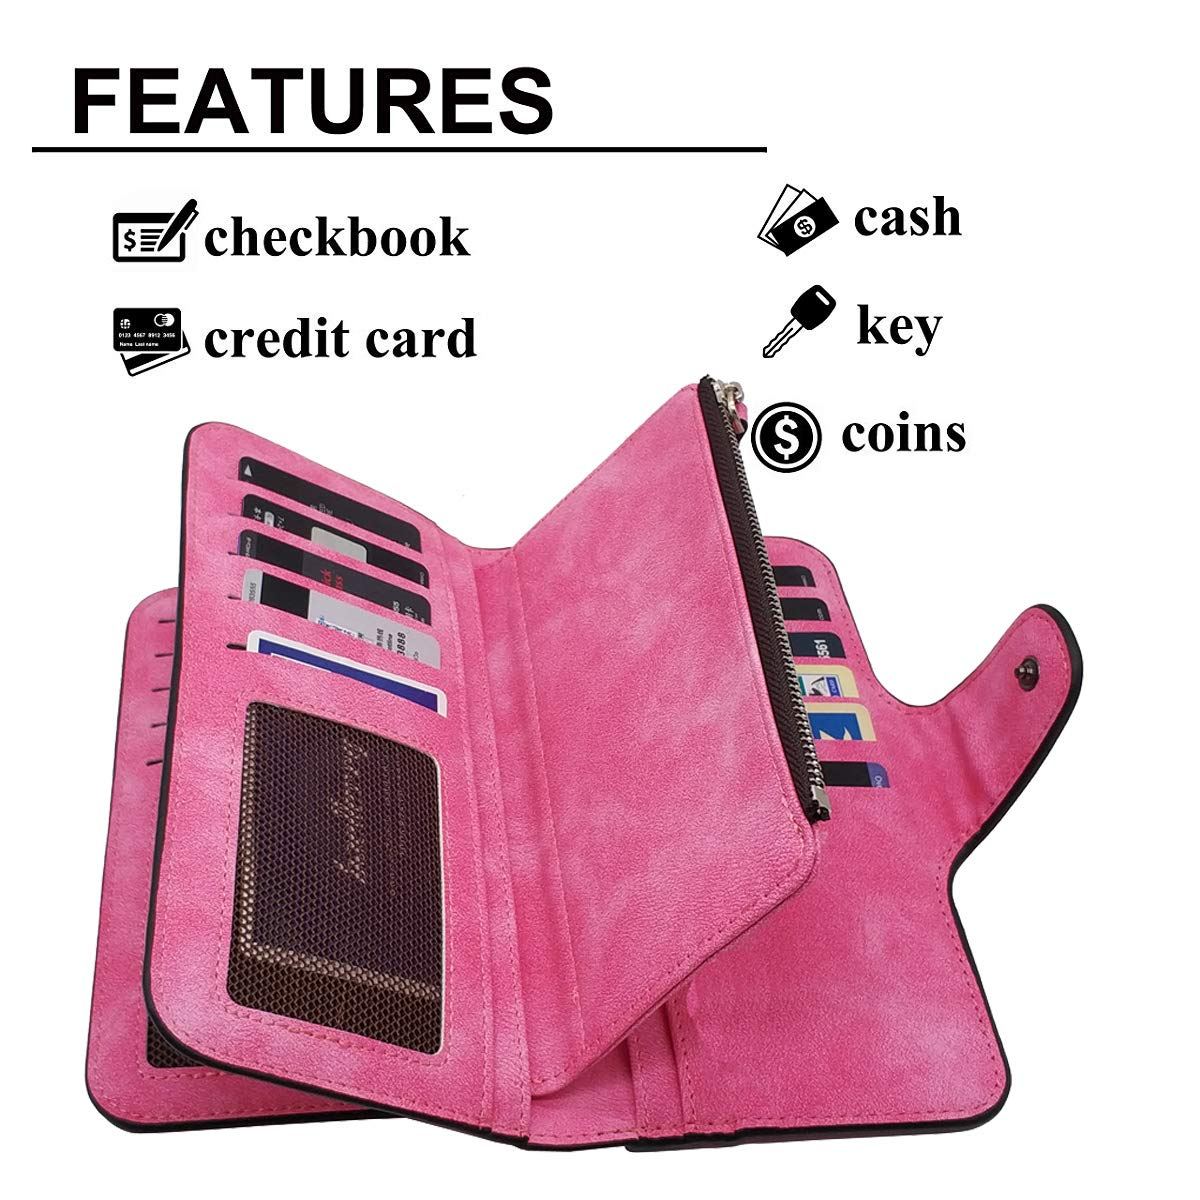 Laynos Wallet for Women Leather Clutch Purse Long Ladies Credit Card Holder Organizer Travel Purse